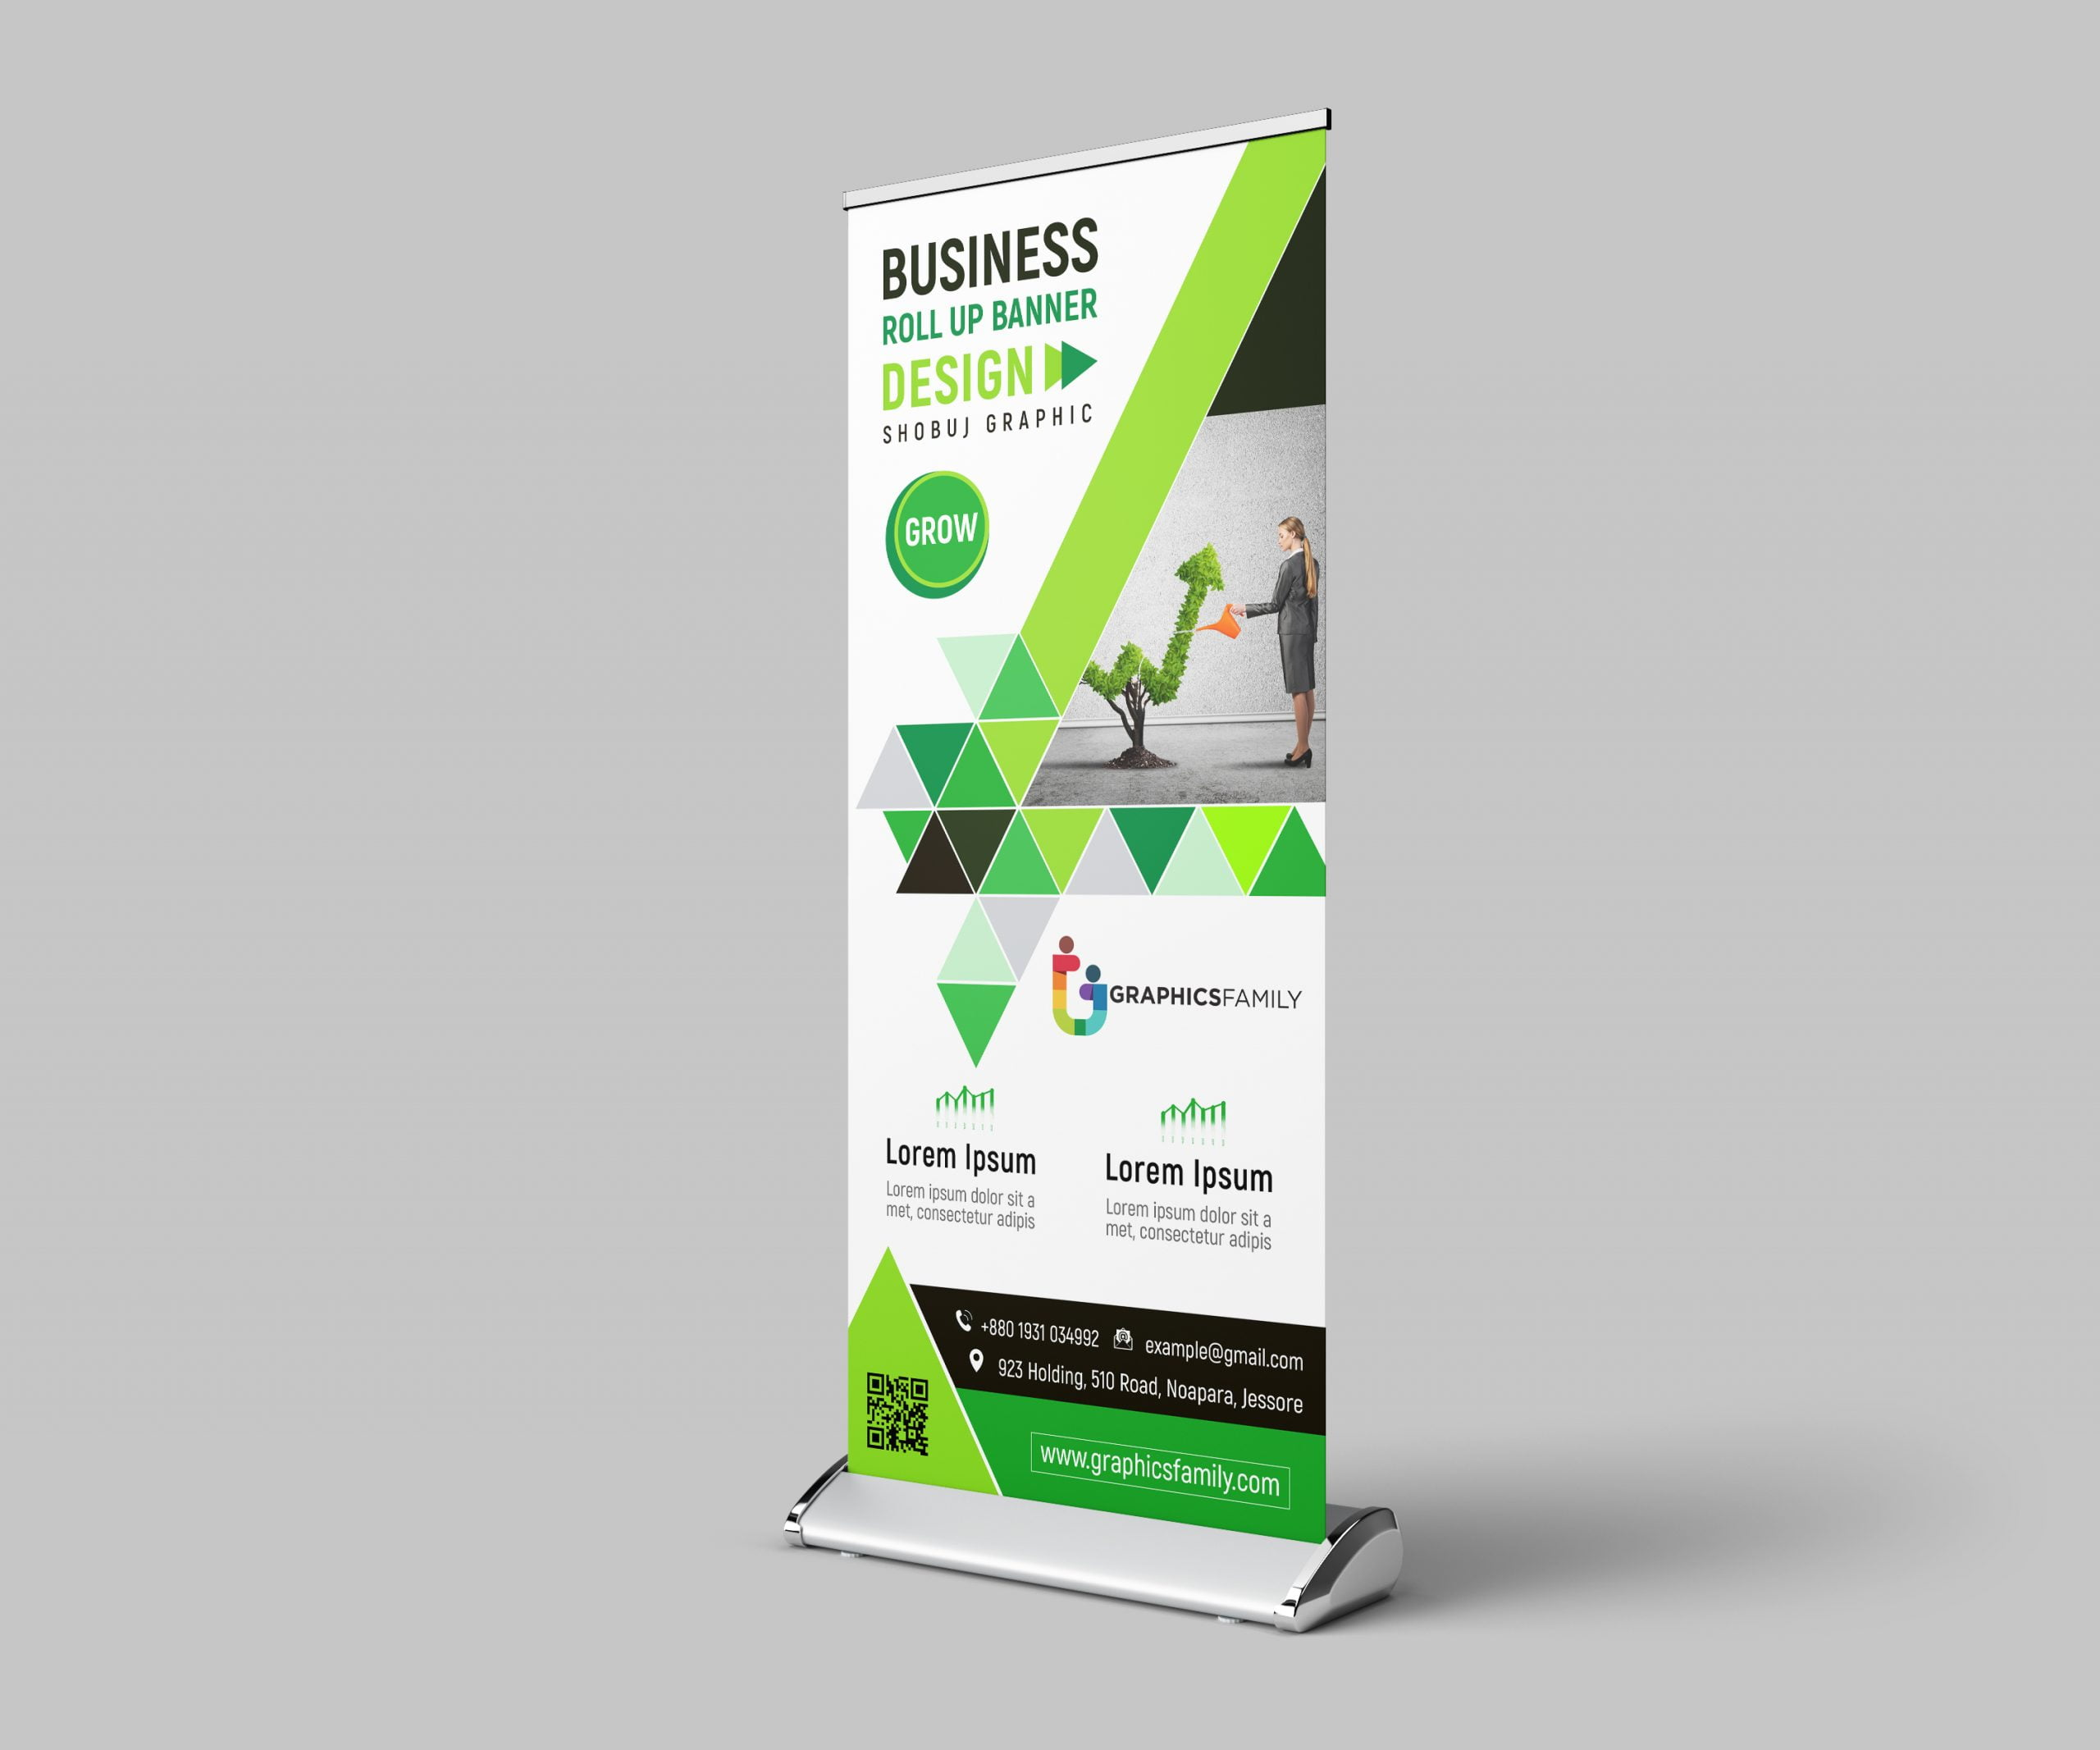 Free-Modern-Professional-Business-Roll-Up-Banner-Design